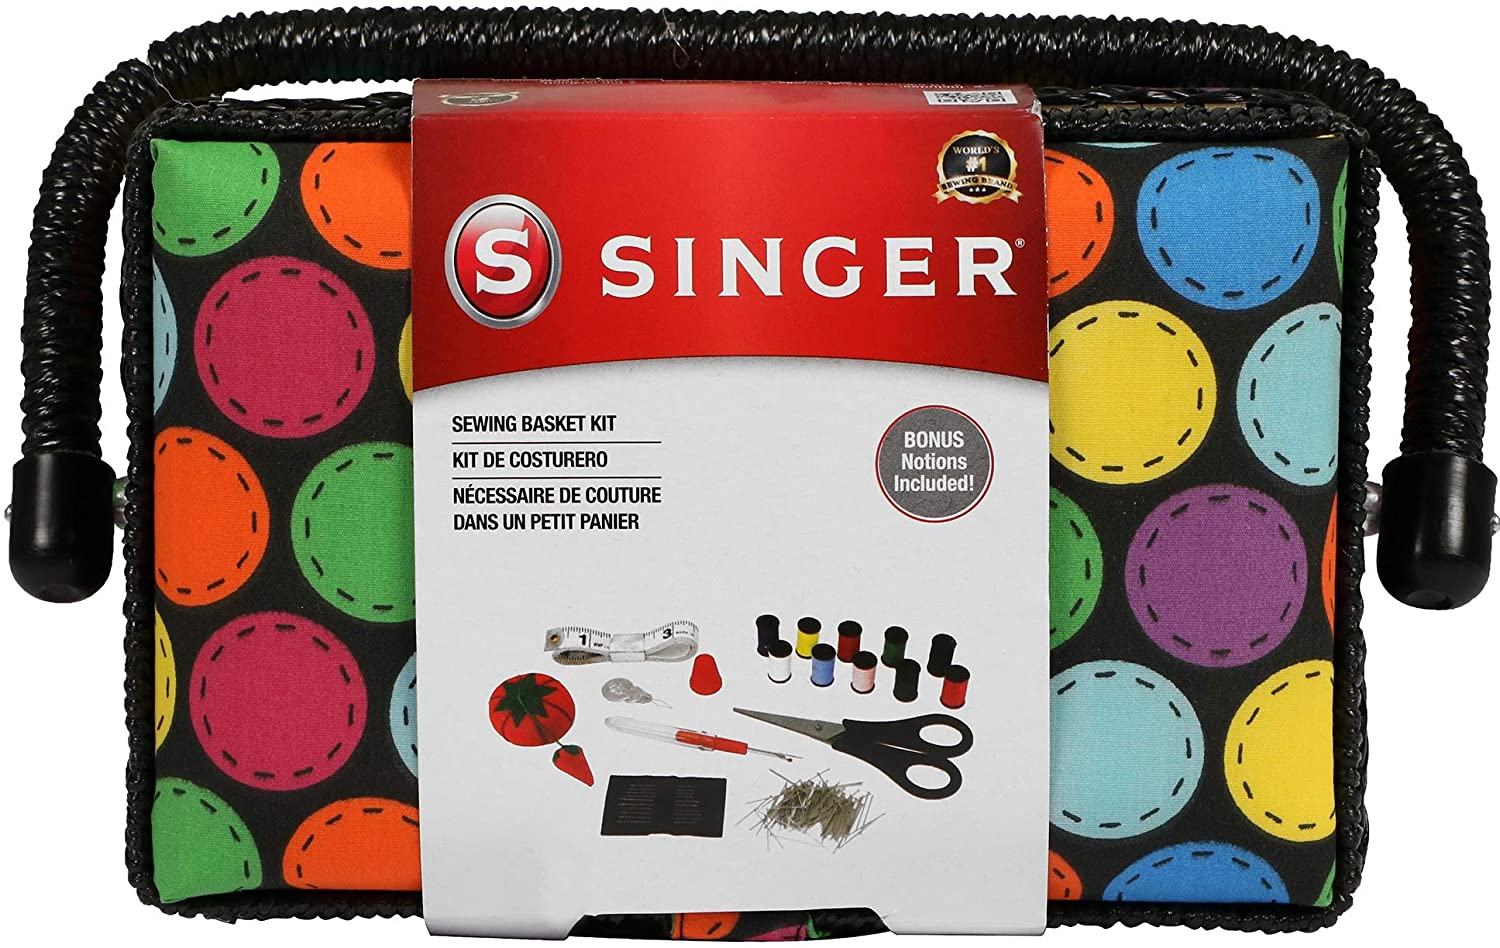 SINGER 07272 Polka Dot Small Basket Kit Milwaukee Mall Virginia Beach Mall Sewing Acces with